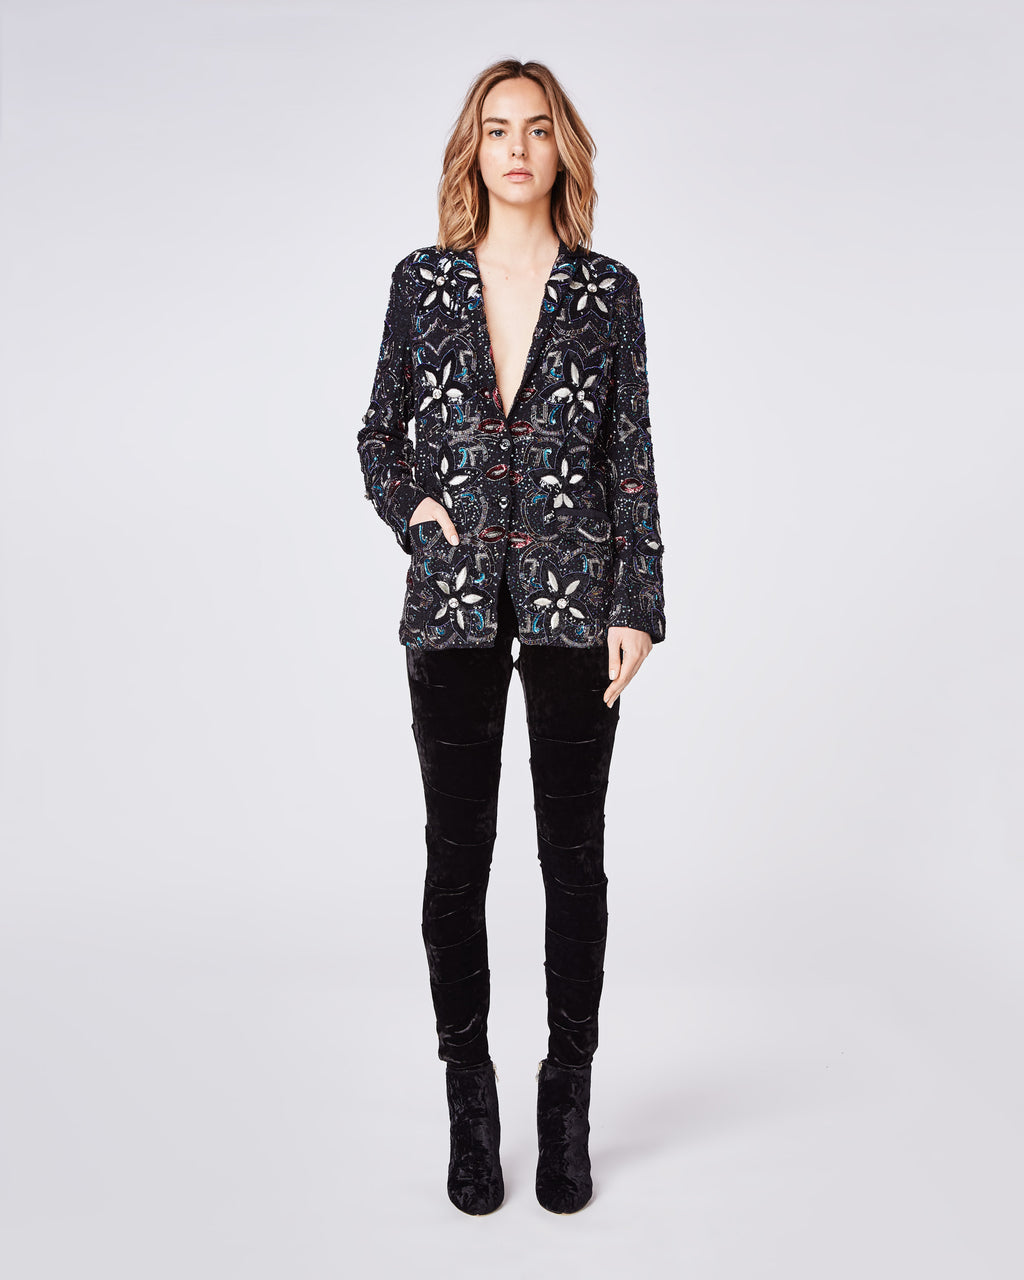 FJ10033 - ENCRUSTED STAR BLAZER - outerwear - jackets - No more boring blazers. This beautifully jewel encrusted blazer features two buttons and a fully lined interior.